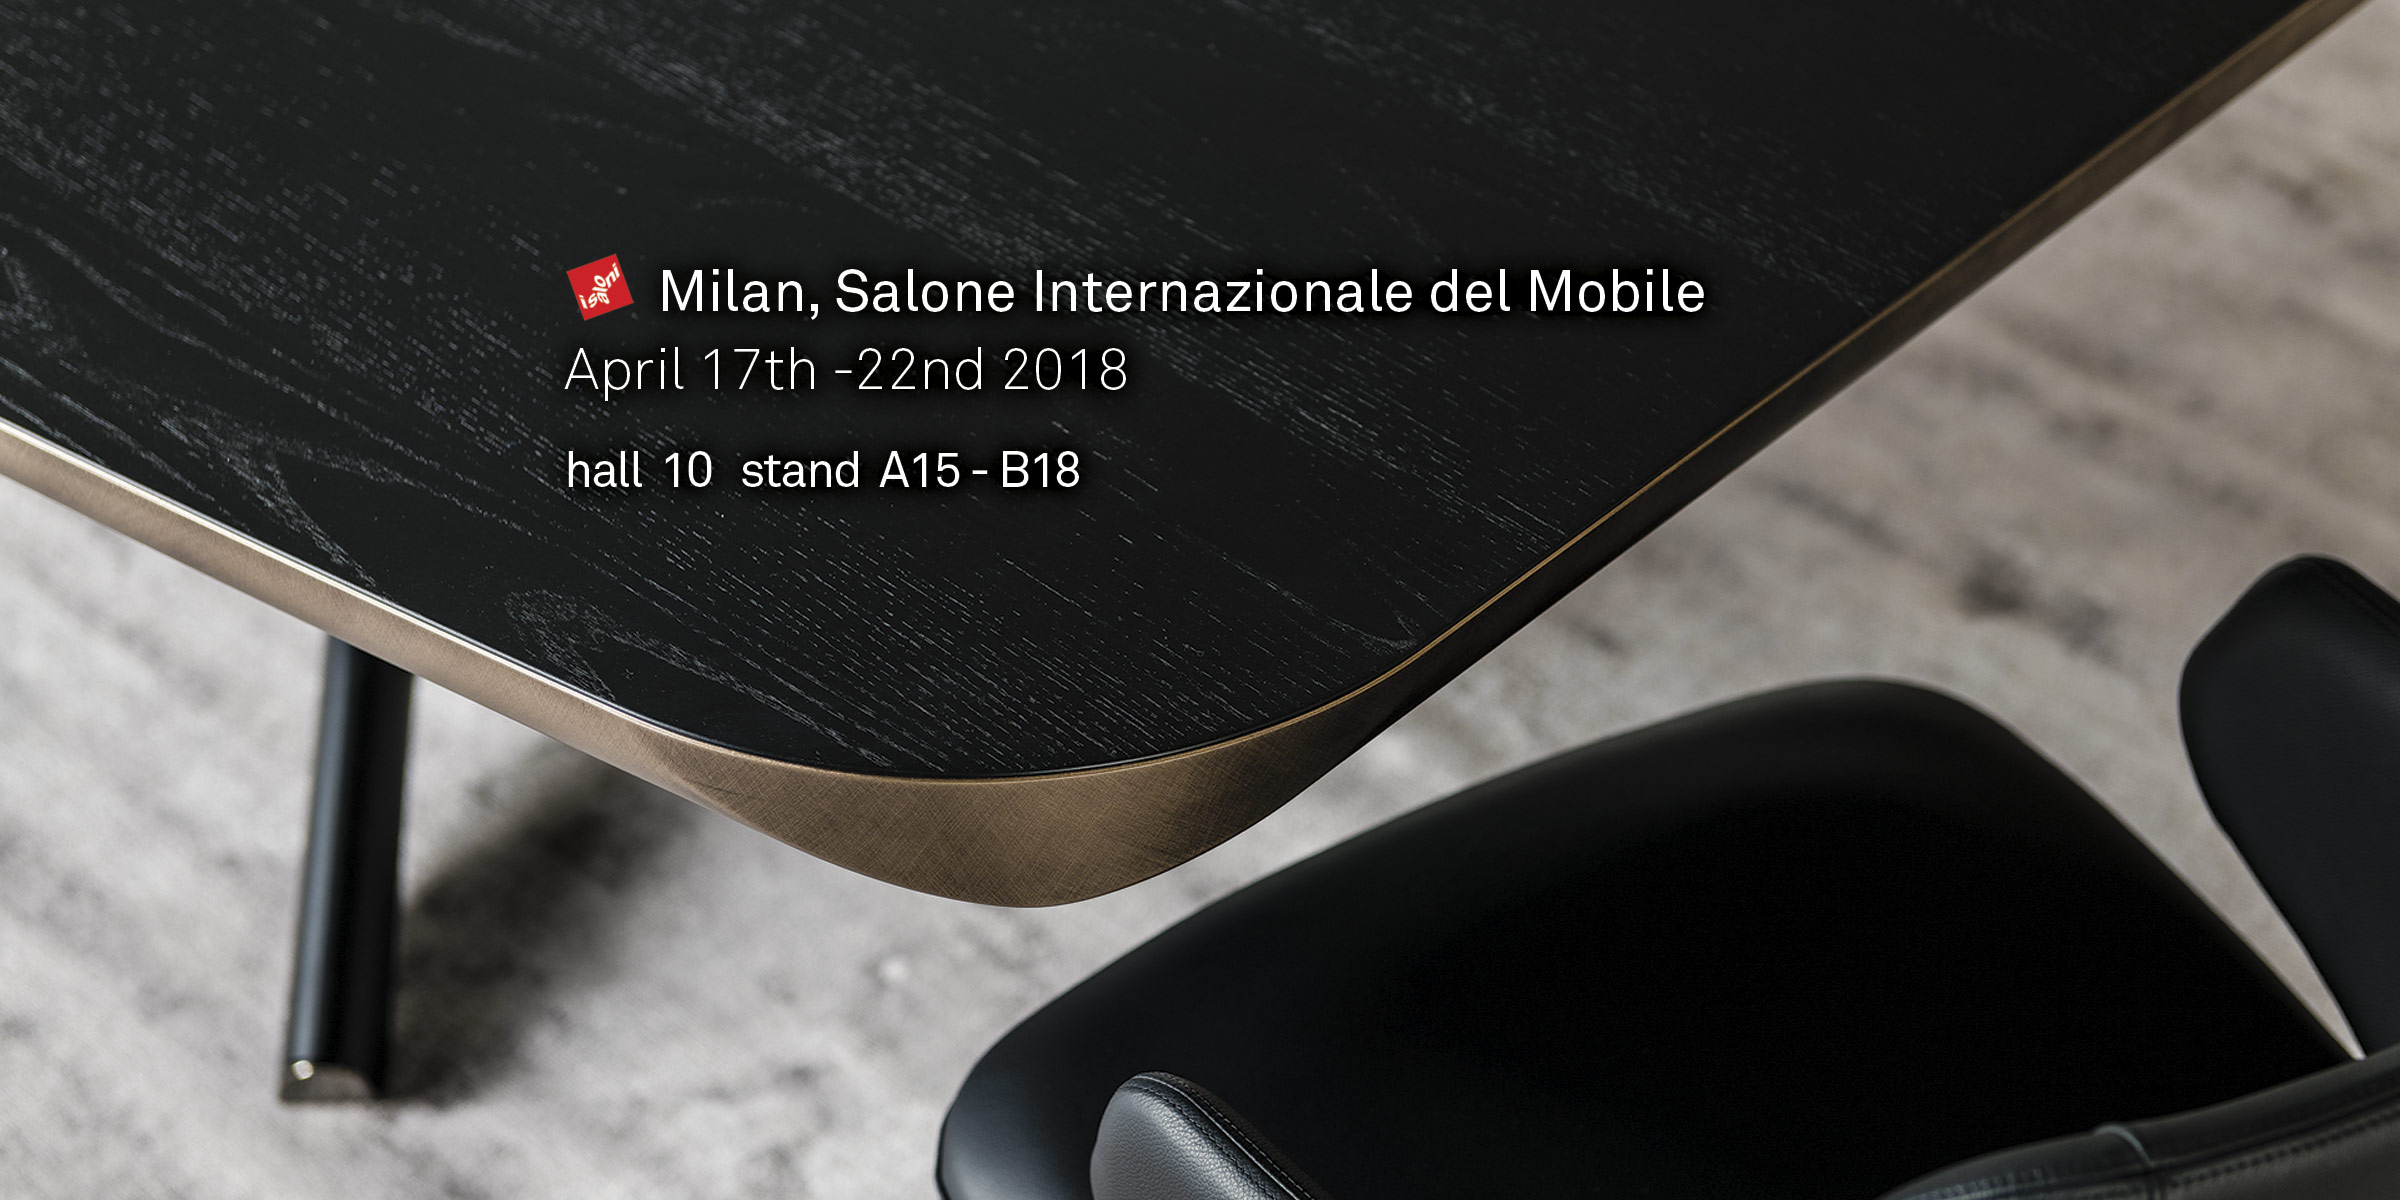 Salone Del Mobile 2018 preview